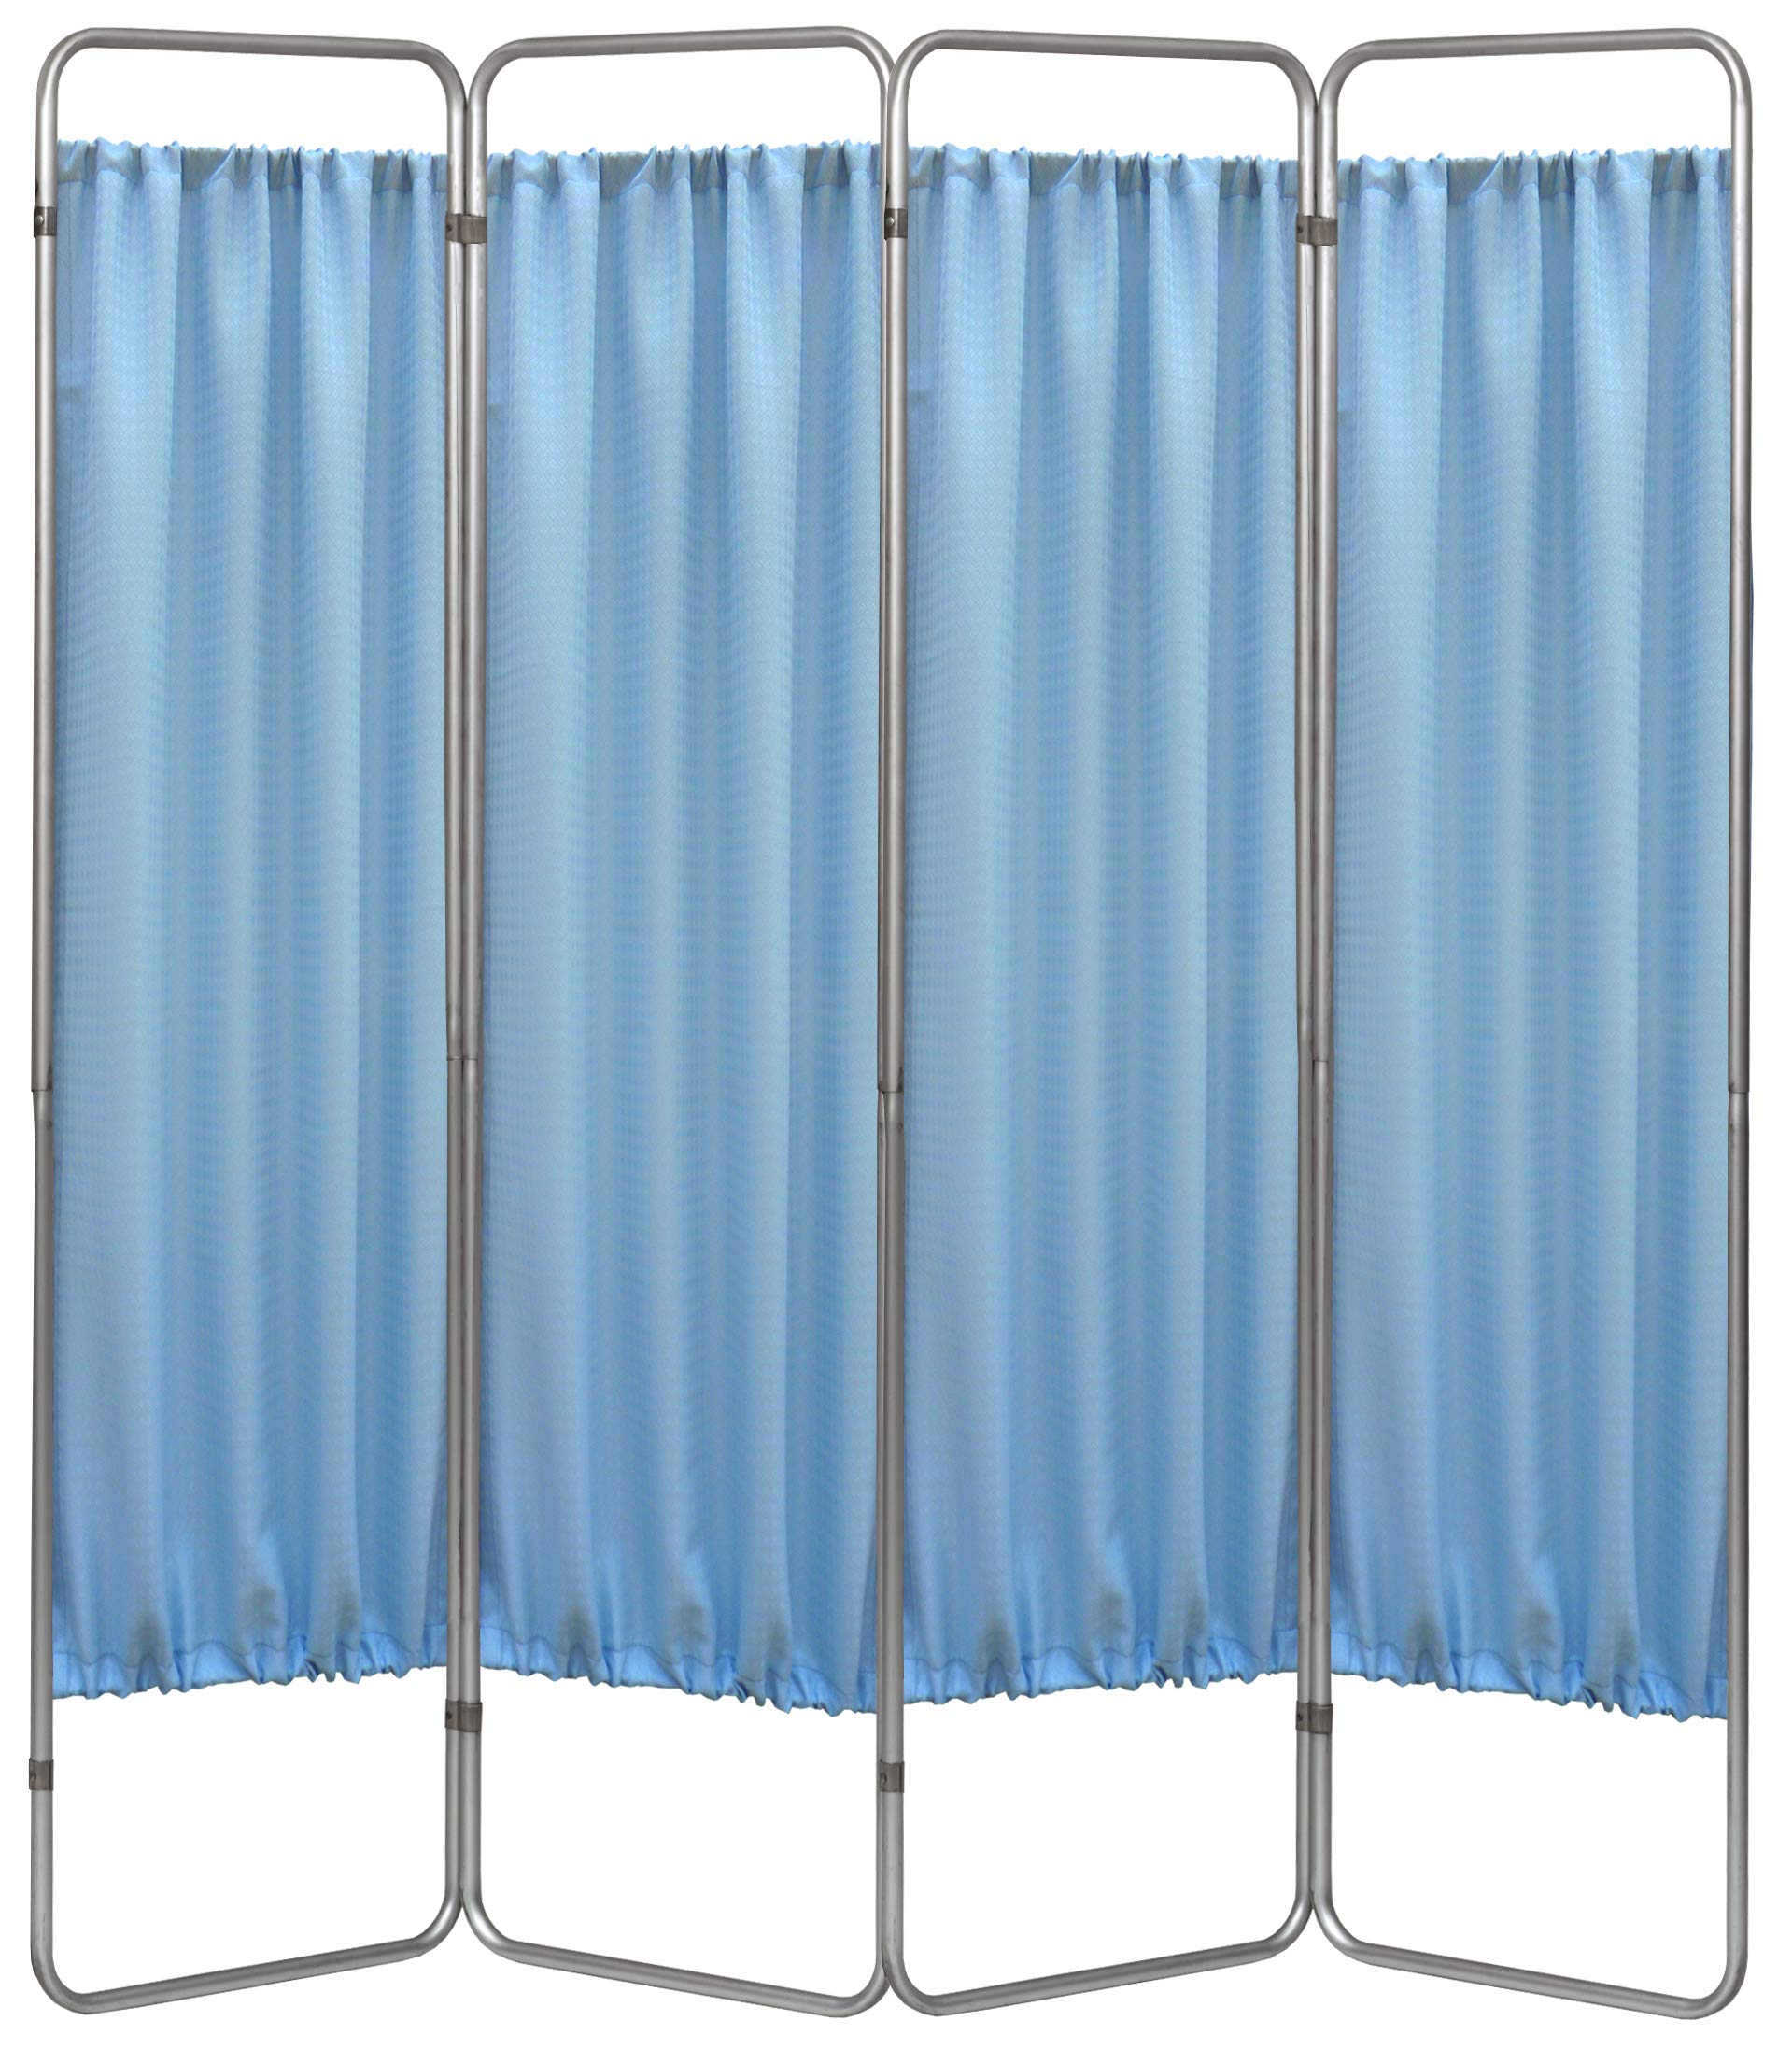 Omnimed 153094-PO 4 Panel Medical Privacy Screen with Powder Panels